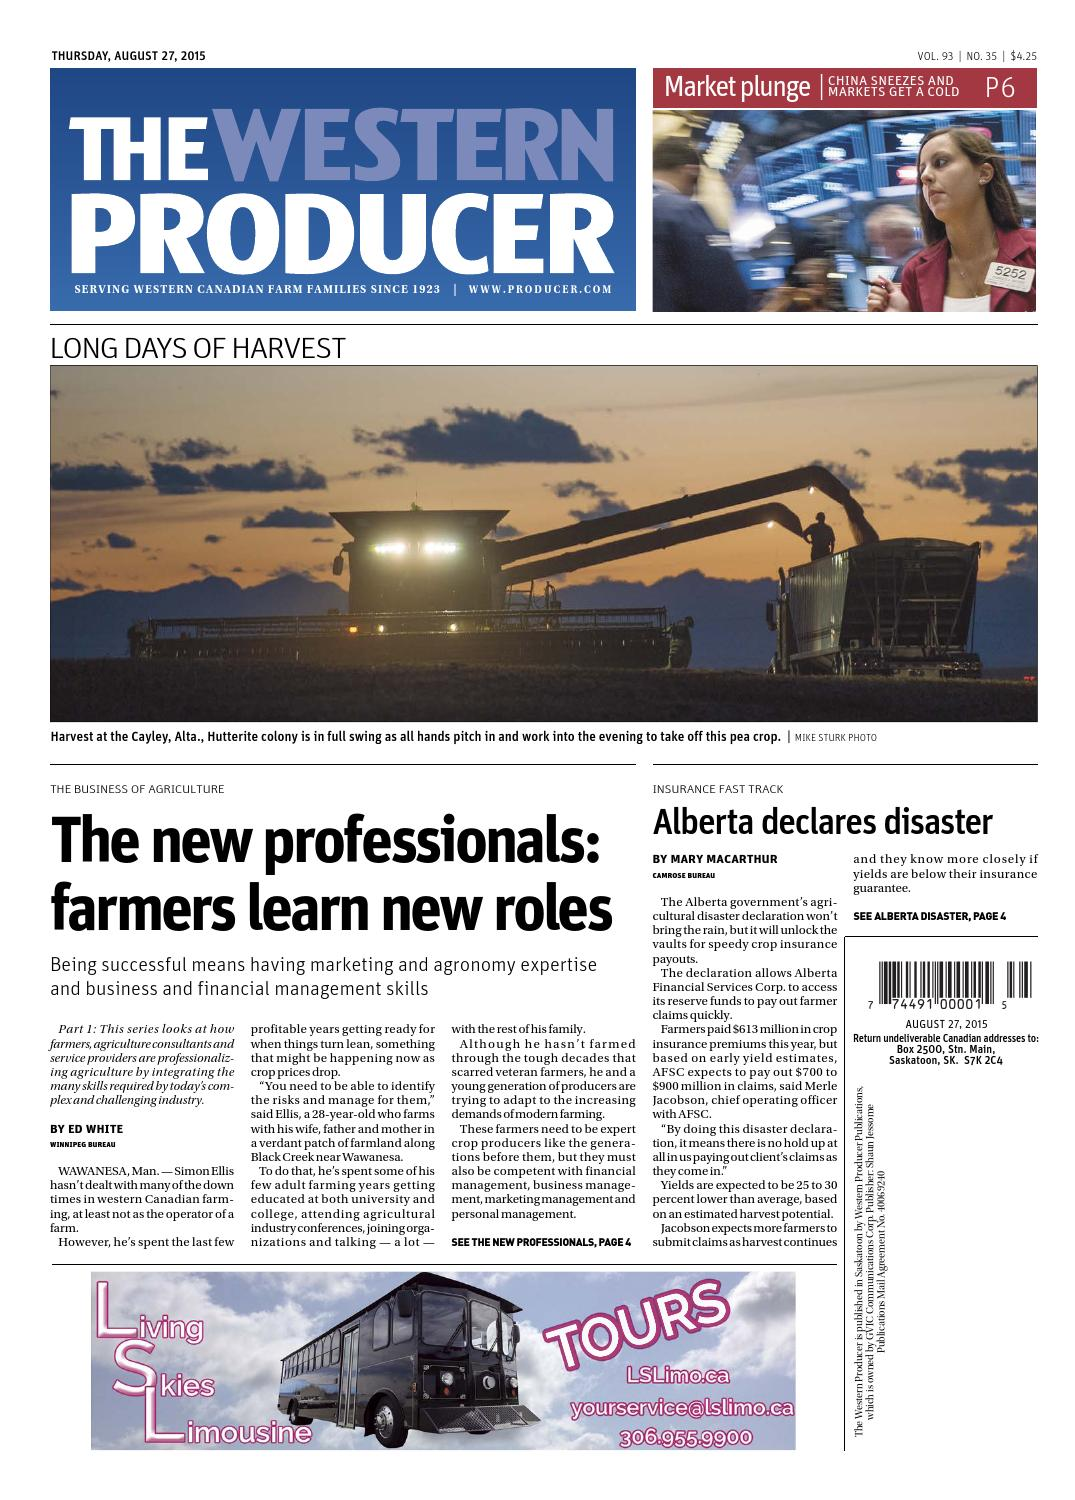 The Western Producer August 27 2015 By The Western Producer Issuu